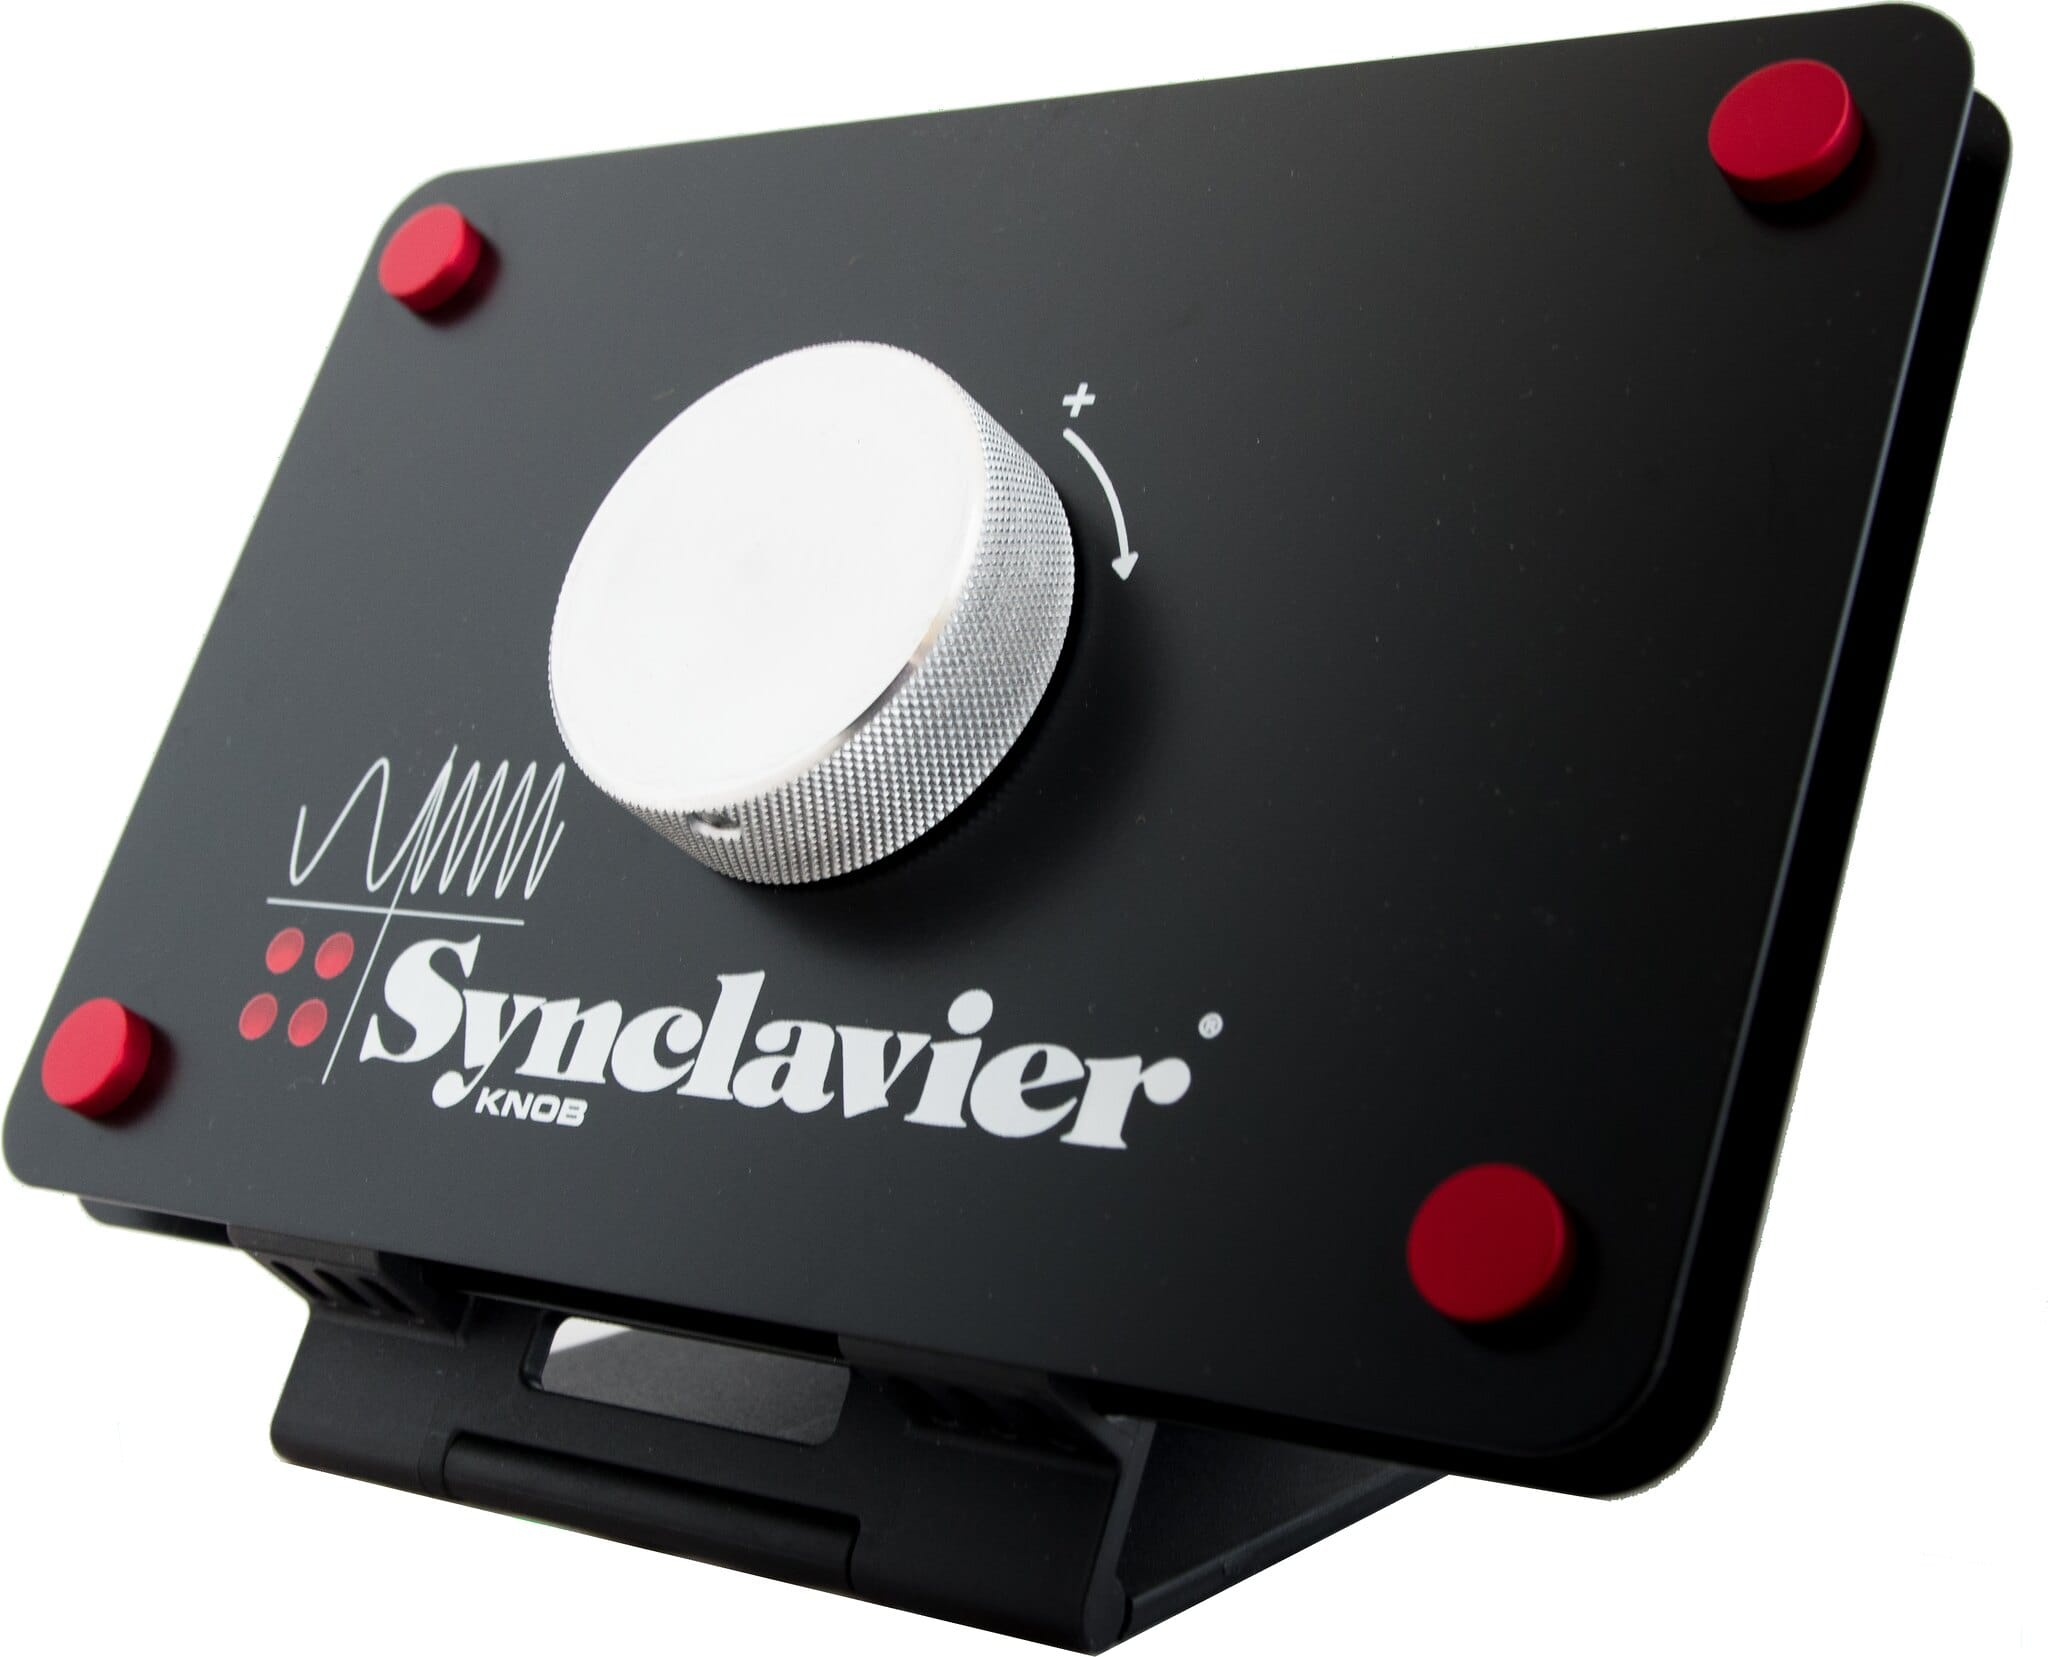 The Synclavier Knob fits many iPad mini stands.